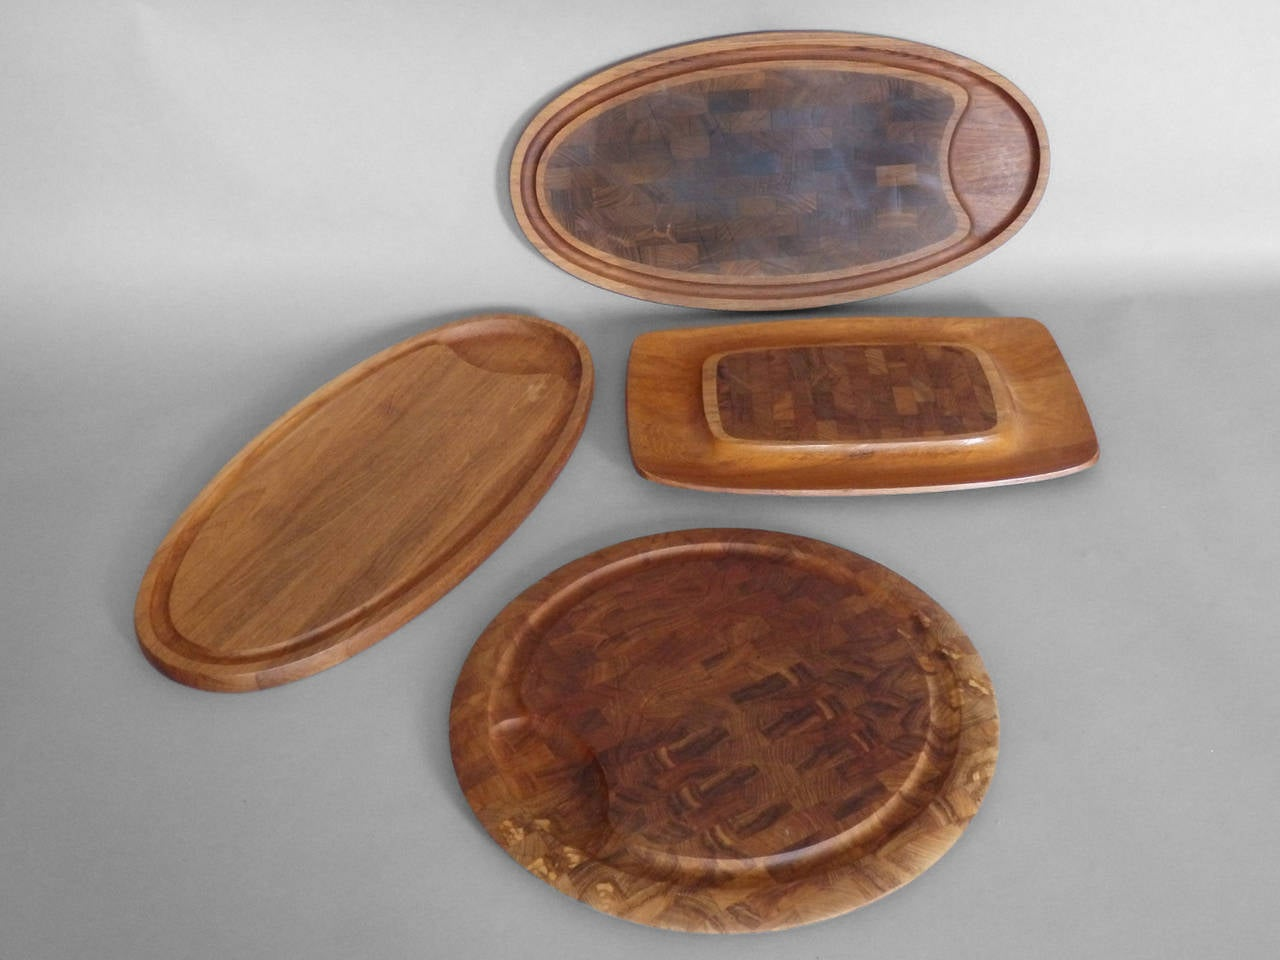 Collection of cutting board trays by JHQ Jens Quistgaard for Dansk.